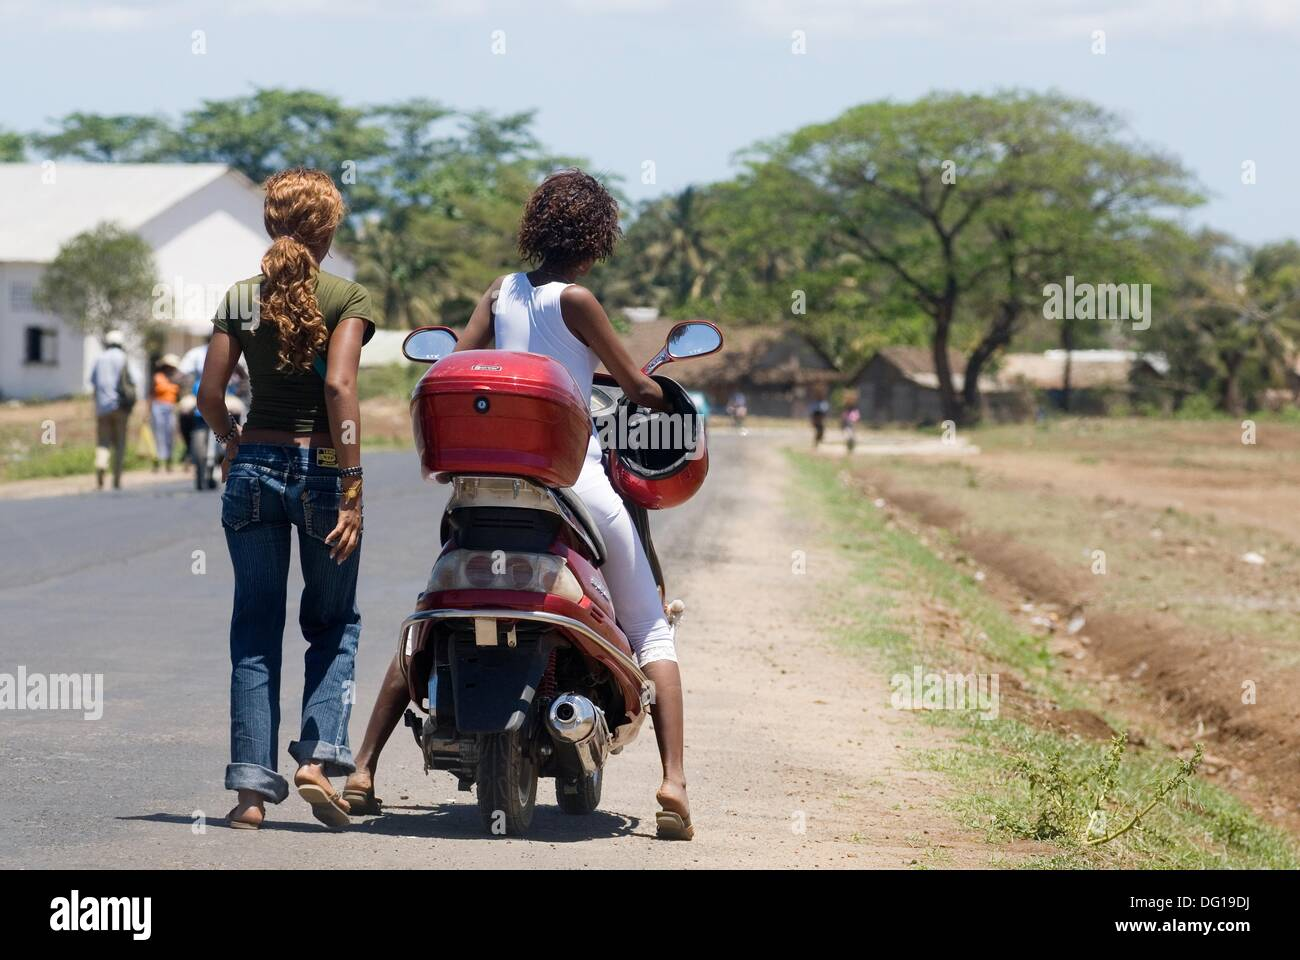 young girls riding scooter, Hell-Ville Andoany, Nosy Be island, Republic of Madagascar, Indian Ocean - Stock Image